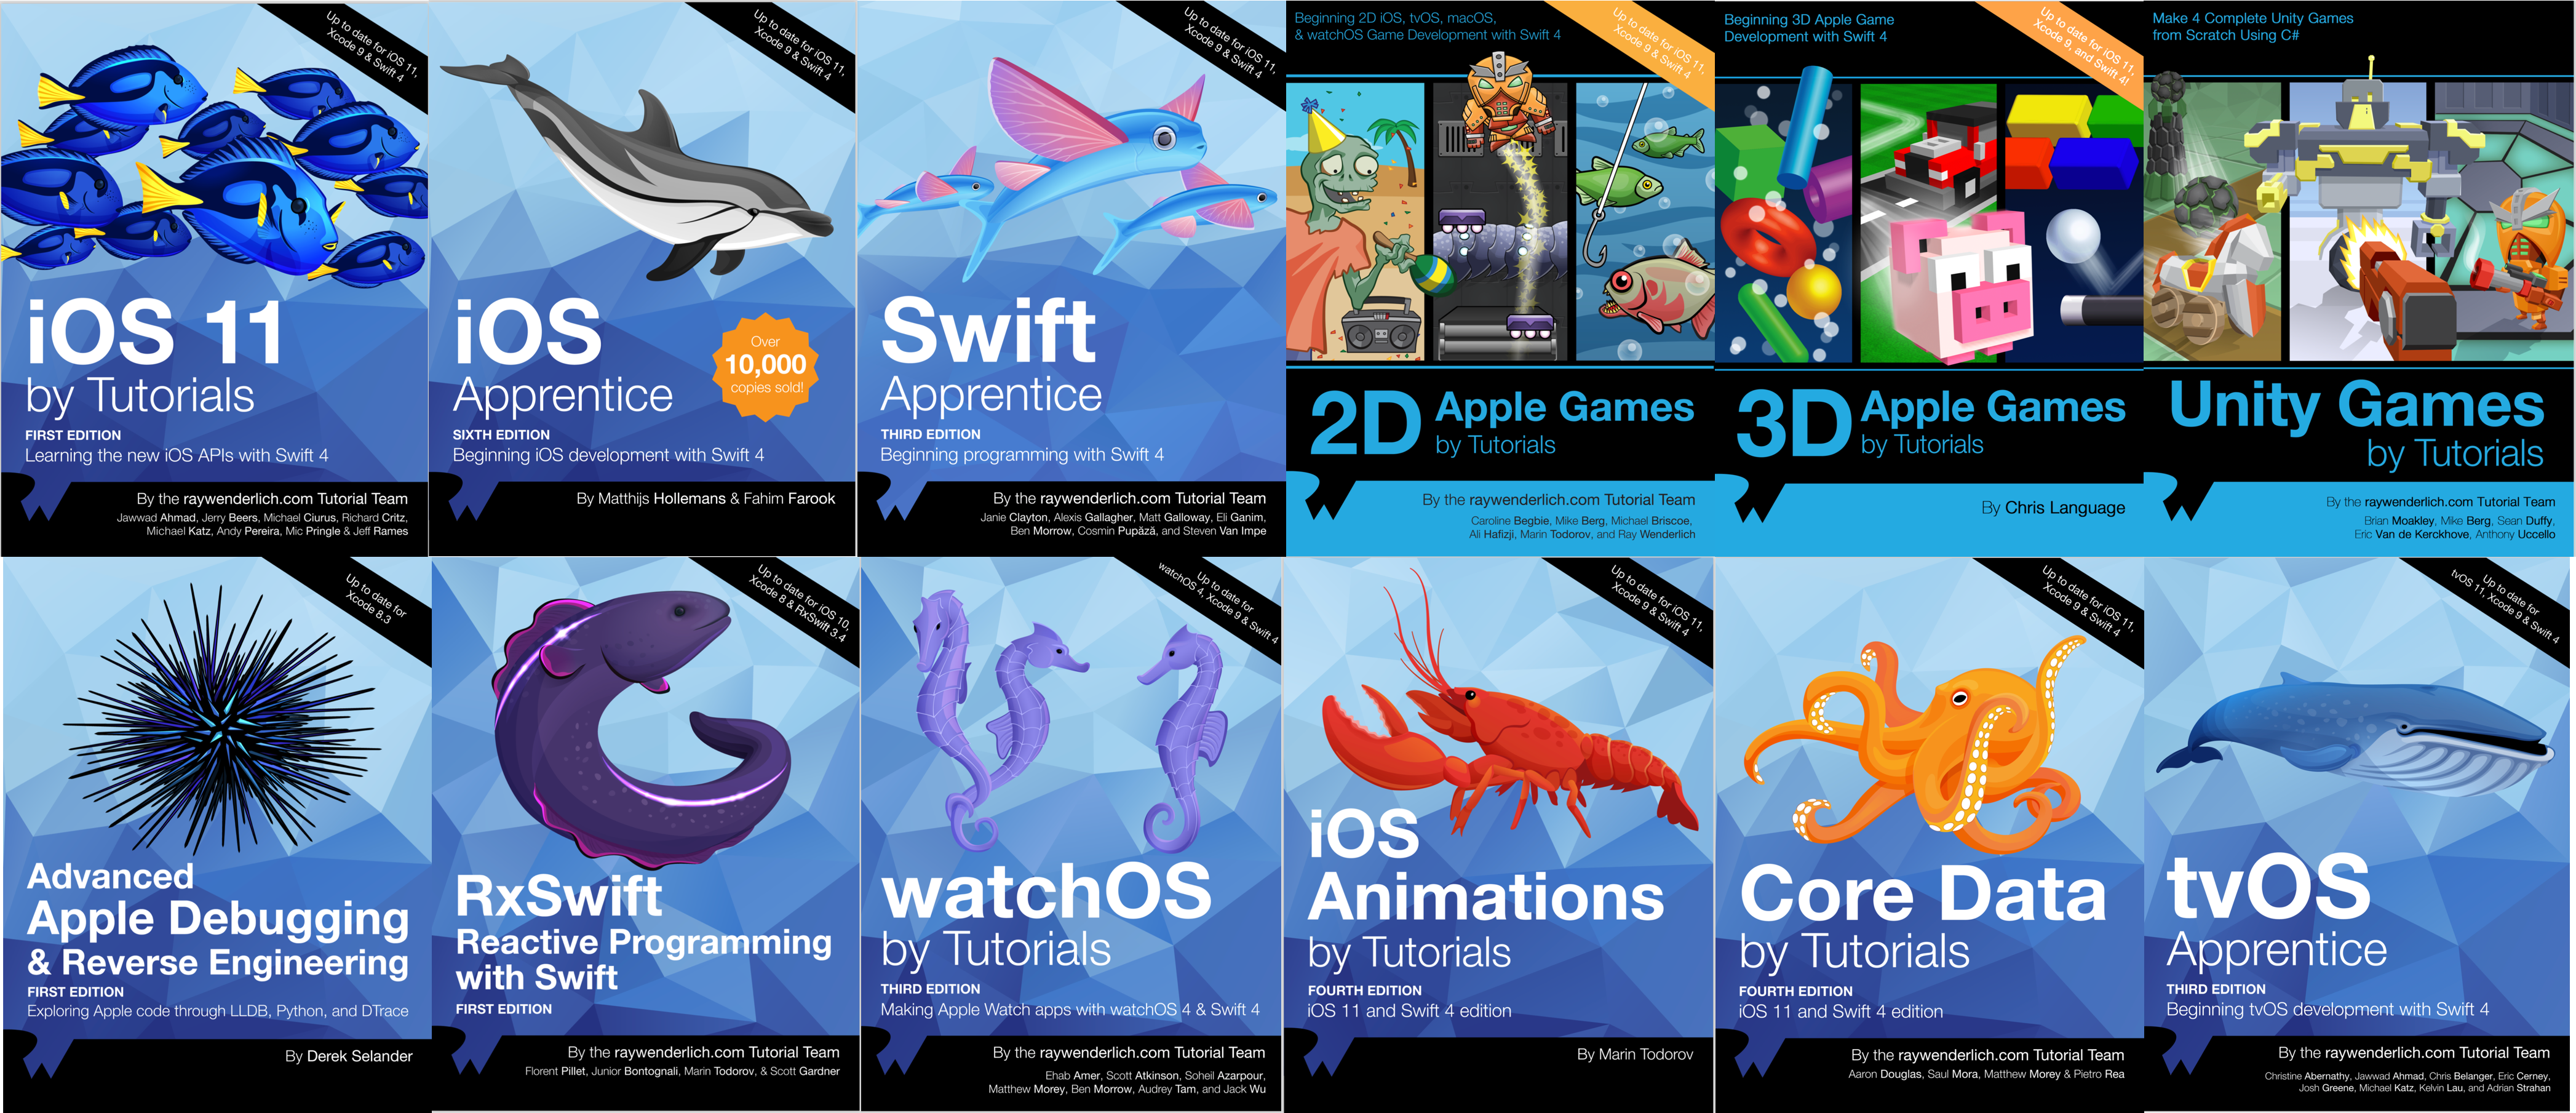 Download all books learn ios by ray wenderlich new version swift 40 download all books learn ios fandeluxe Choice Image